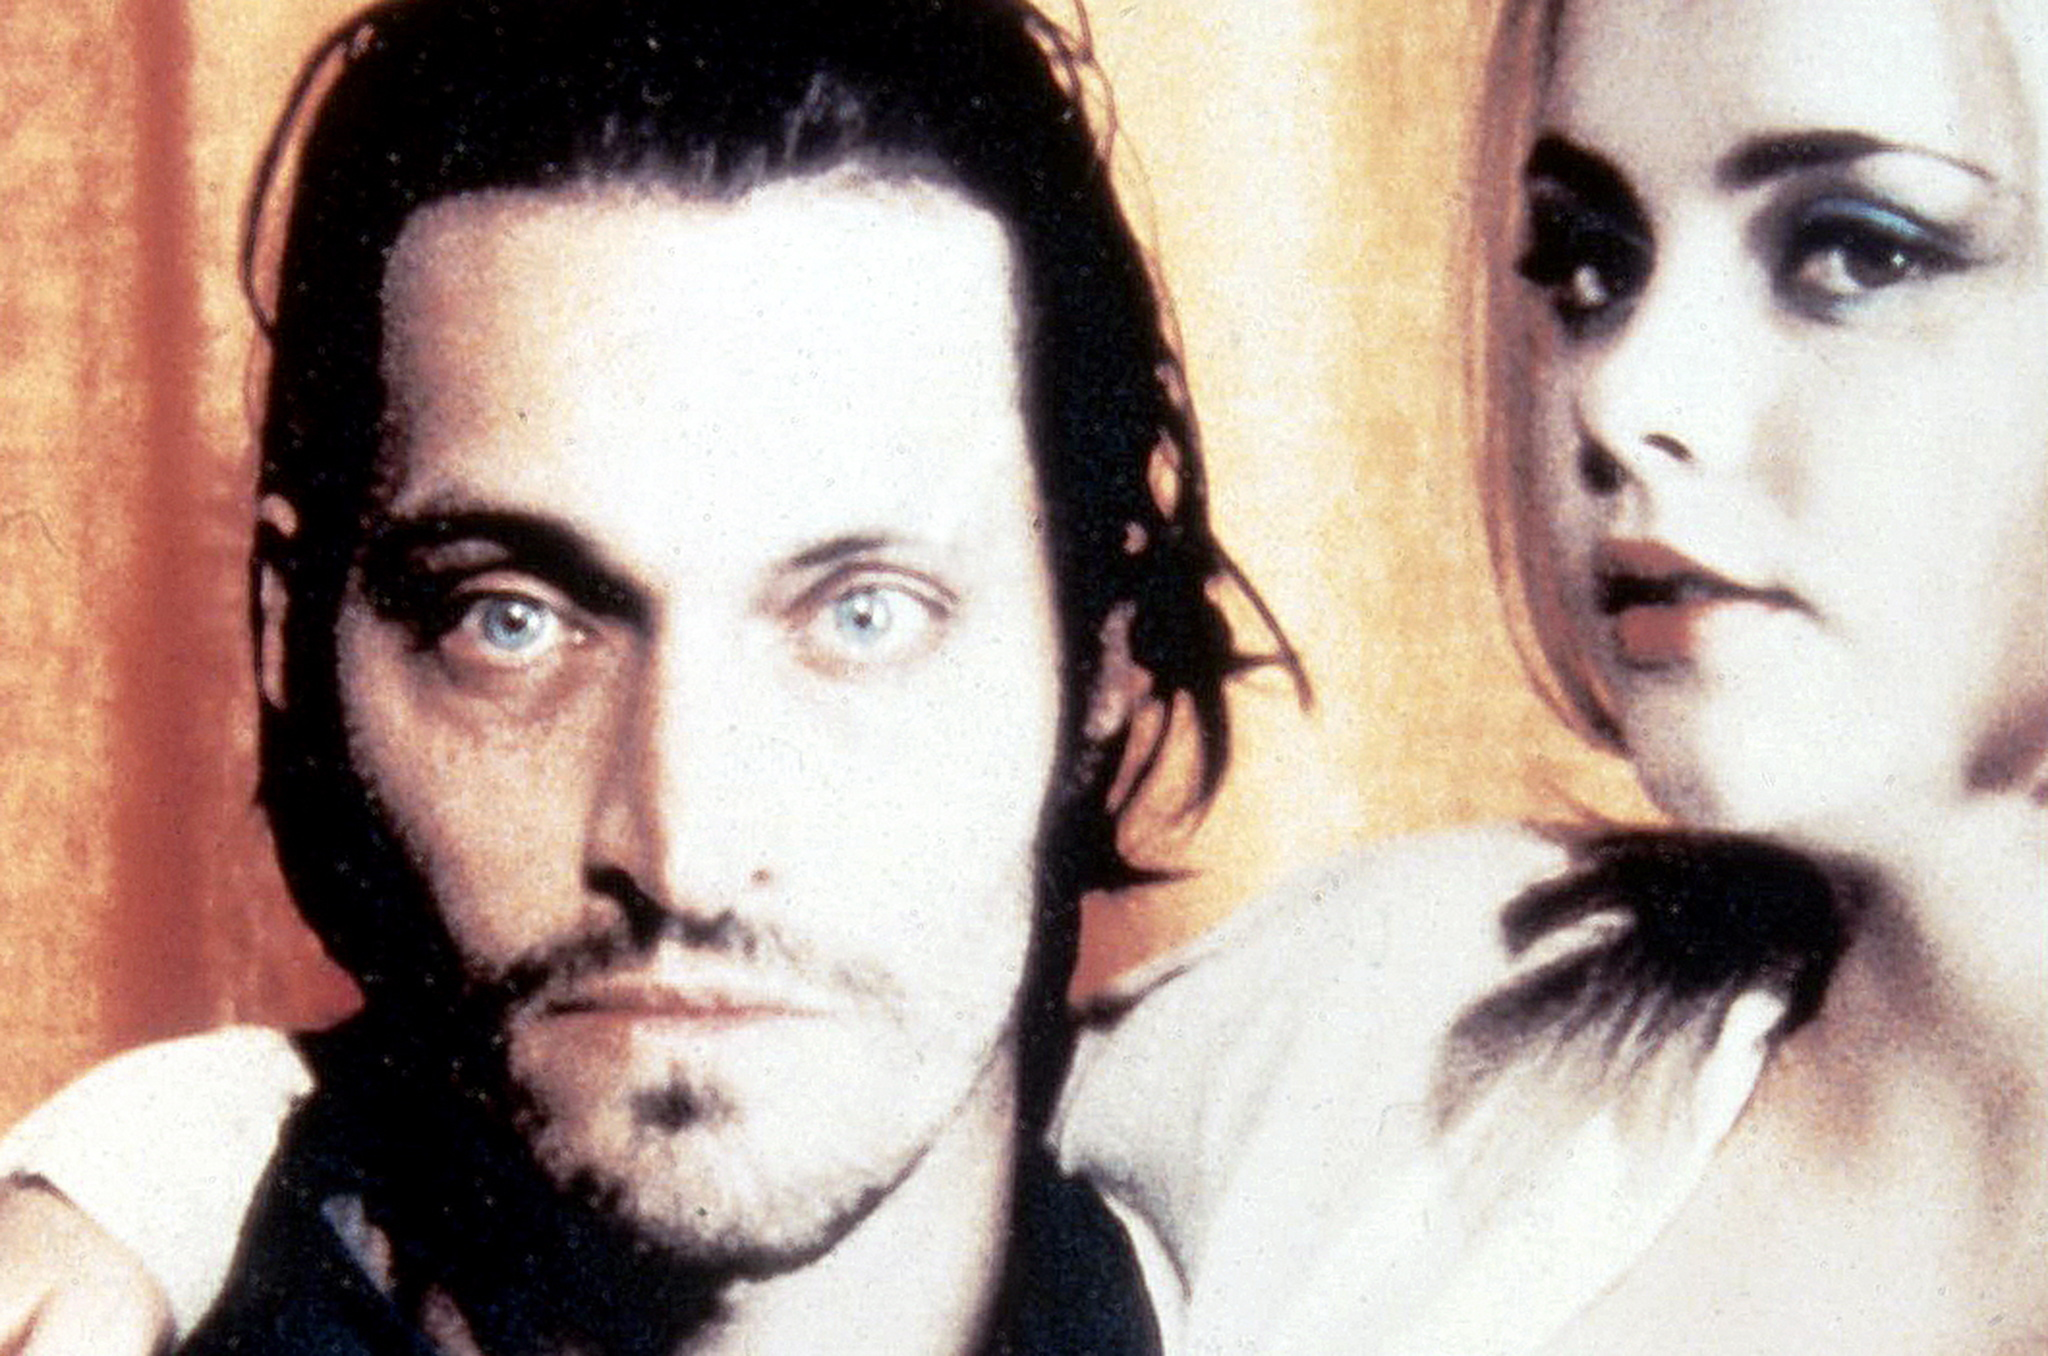 Romantic film: Buffalo 66